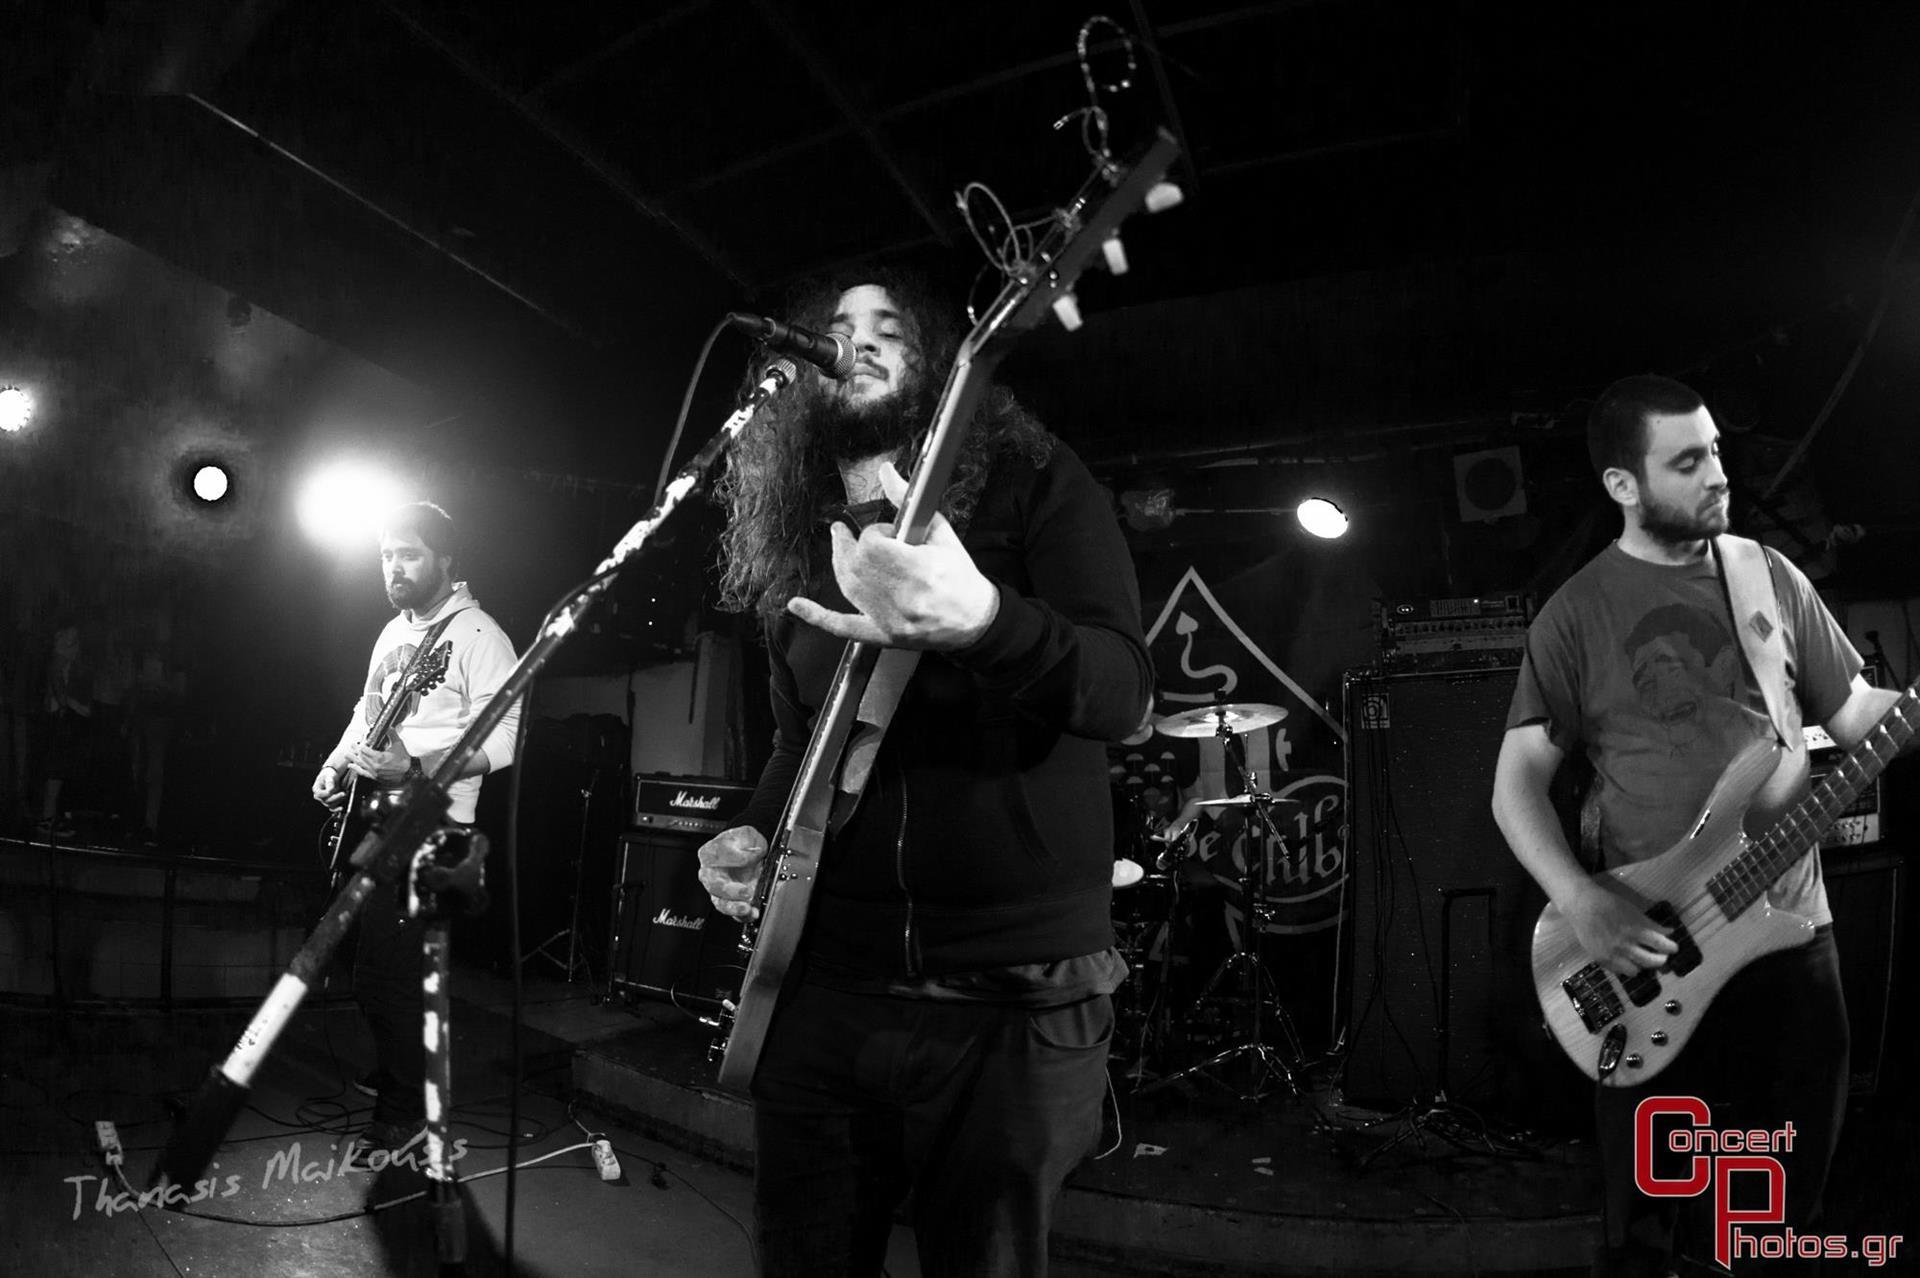 Battle Of The Bands Athens - Leg 4-test photographer:  - Battle Of The Bands-20150208-232207